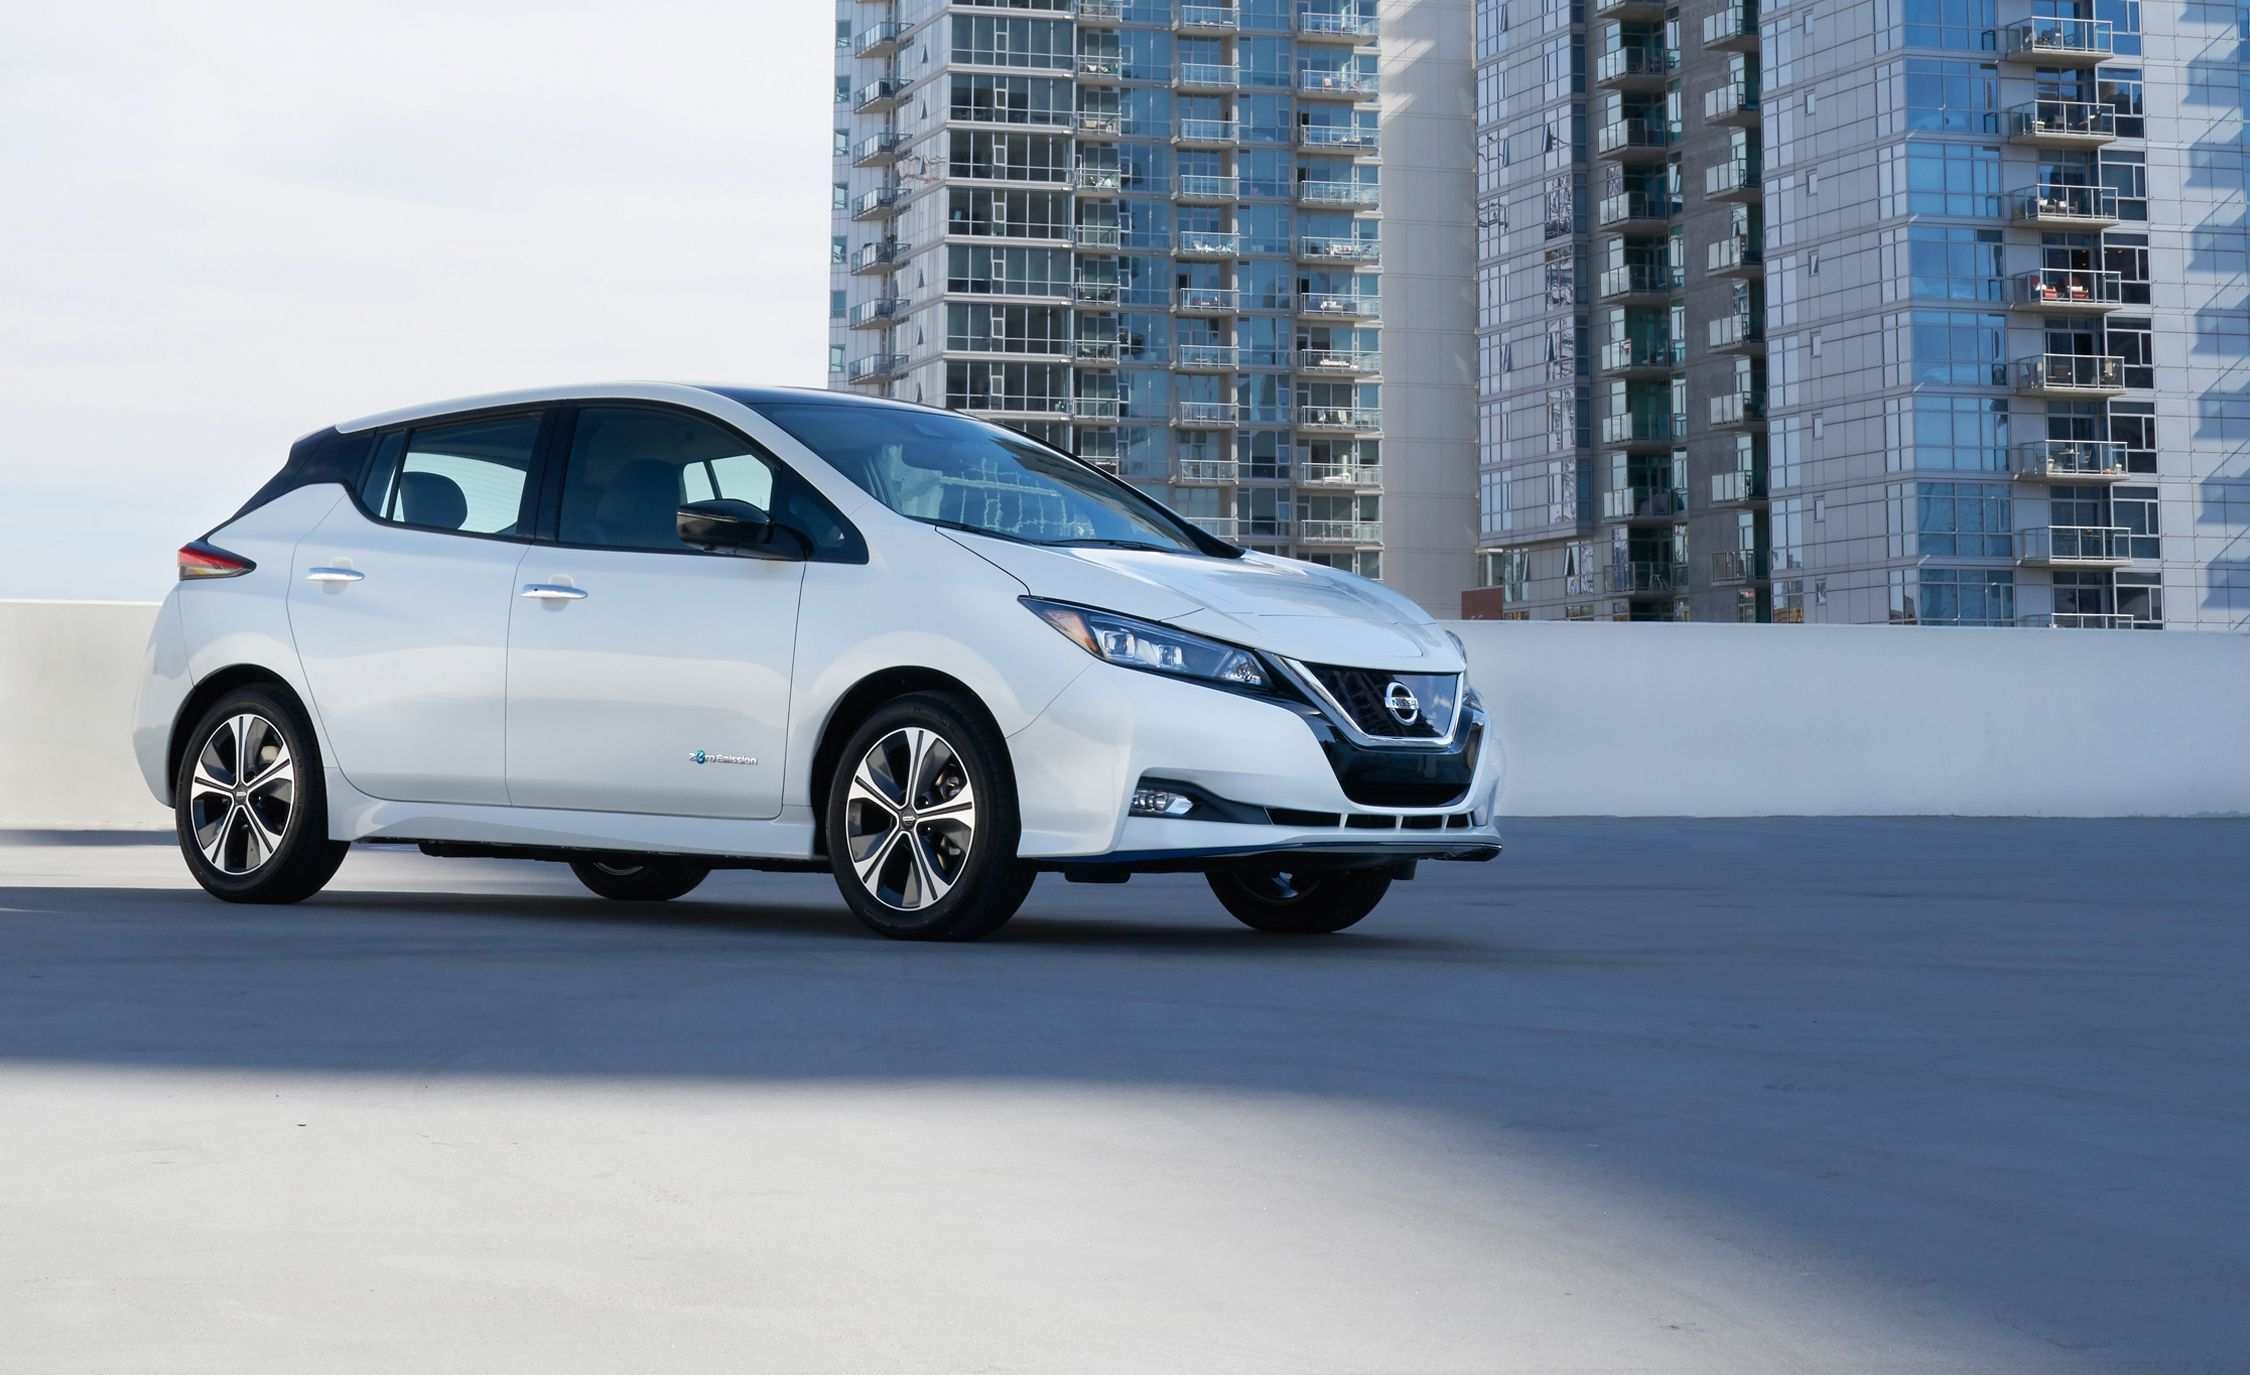 20 Great 2019 Nissan Ev Price and Review with 2019 Nissan Ev